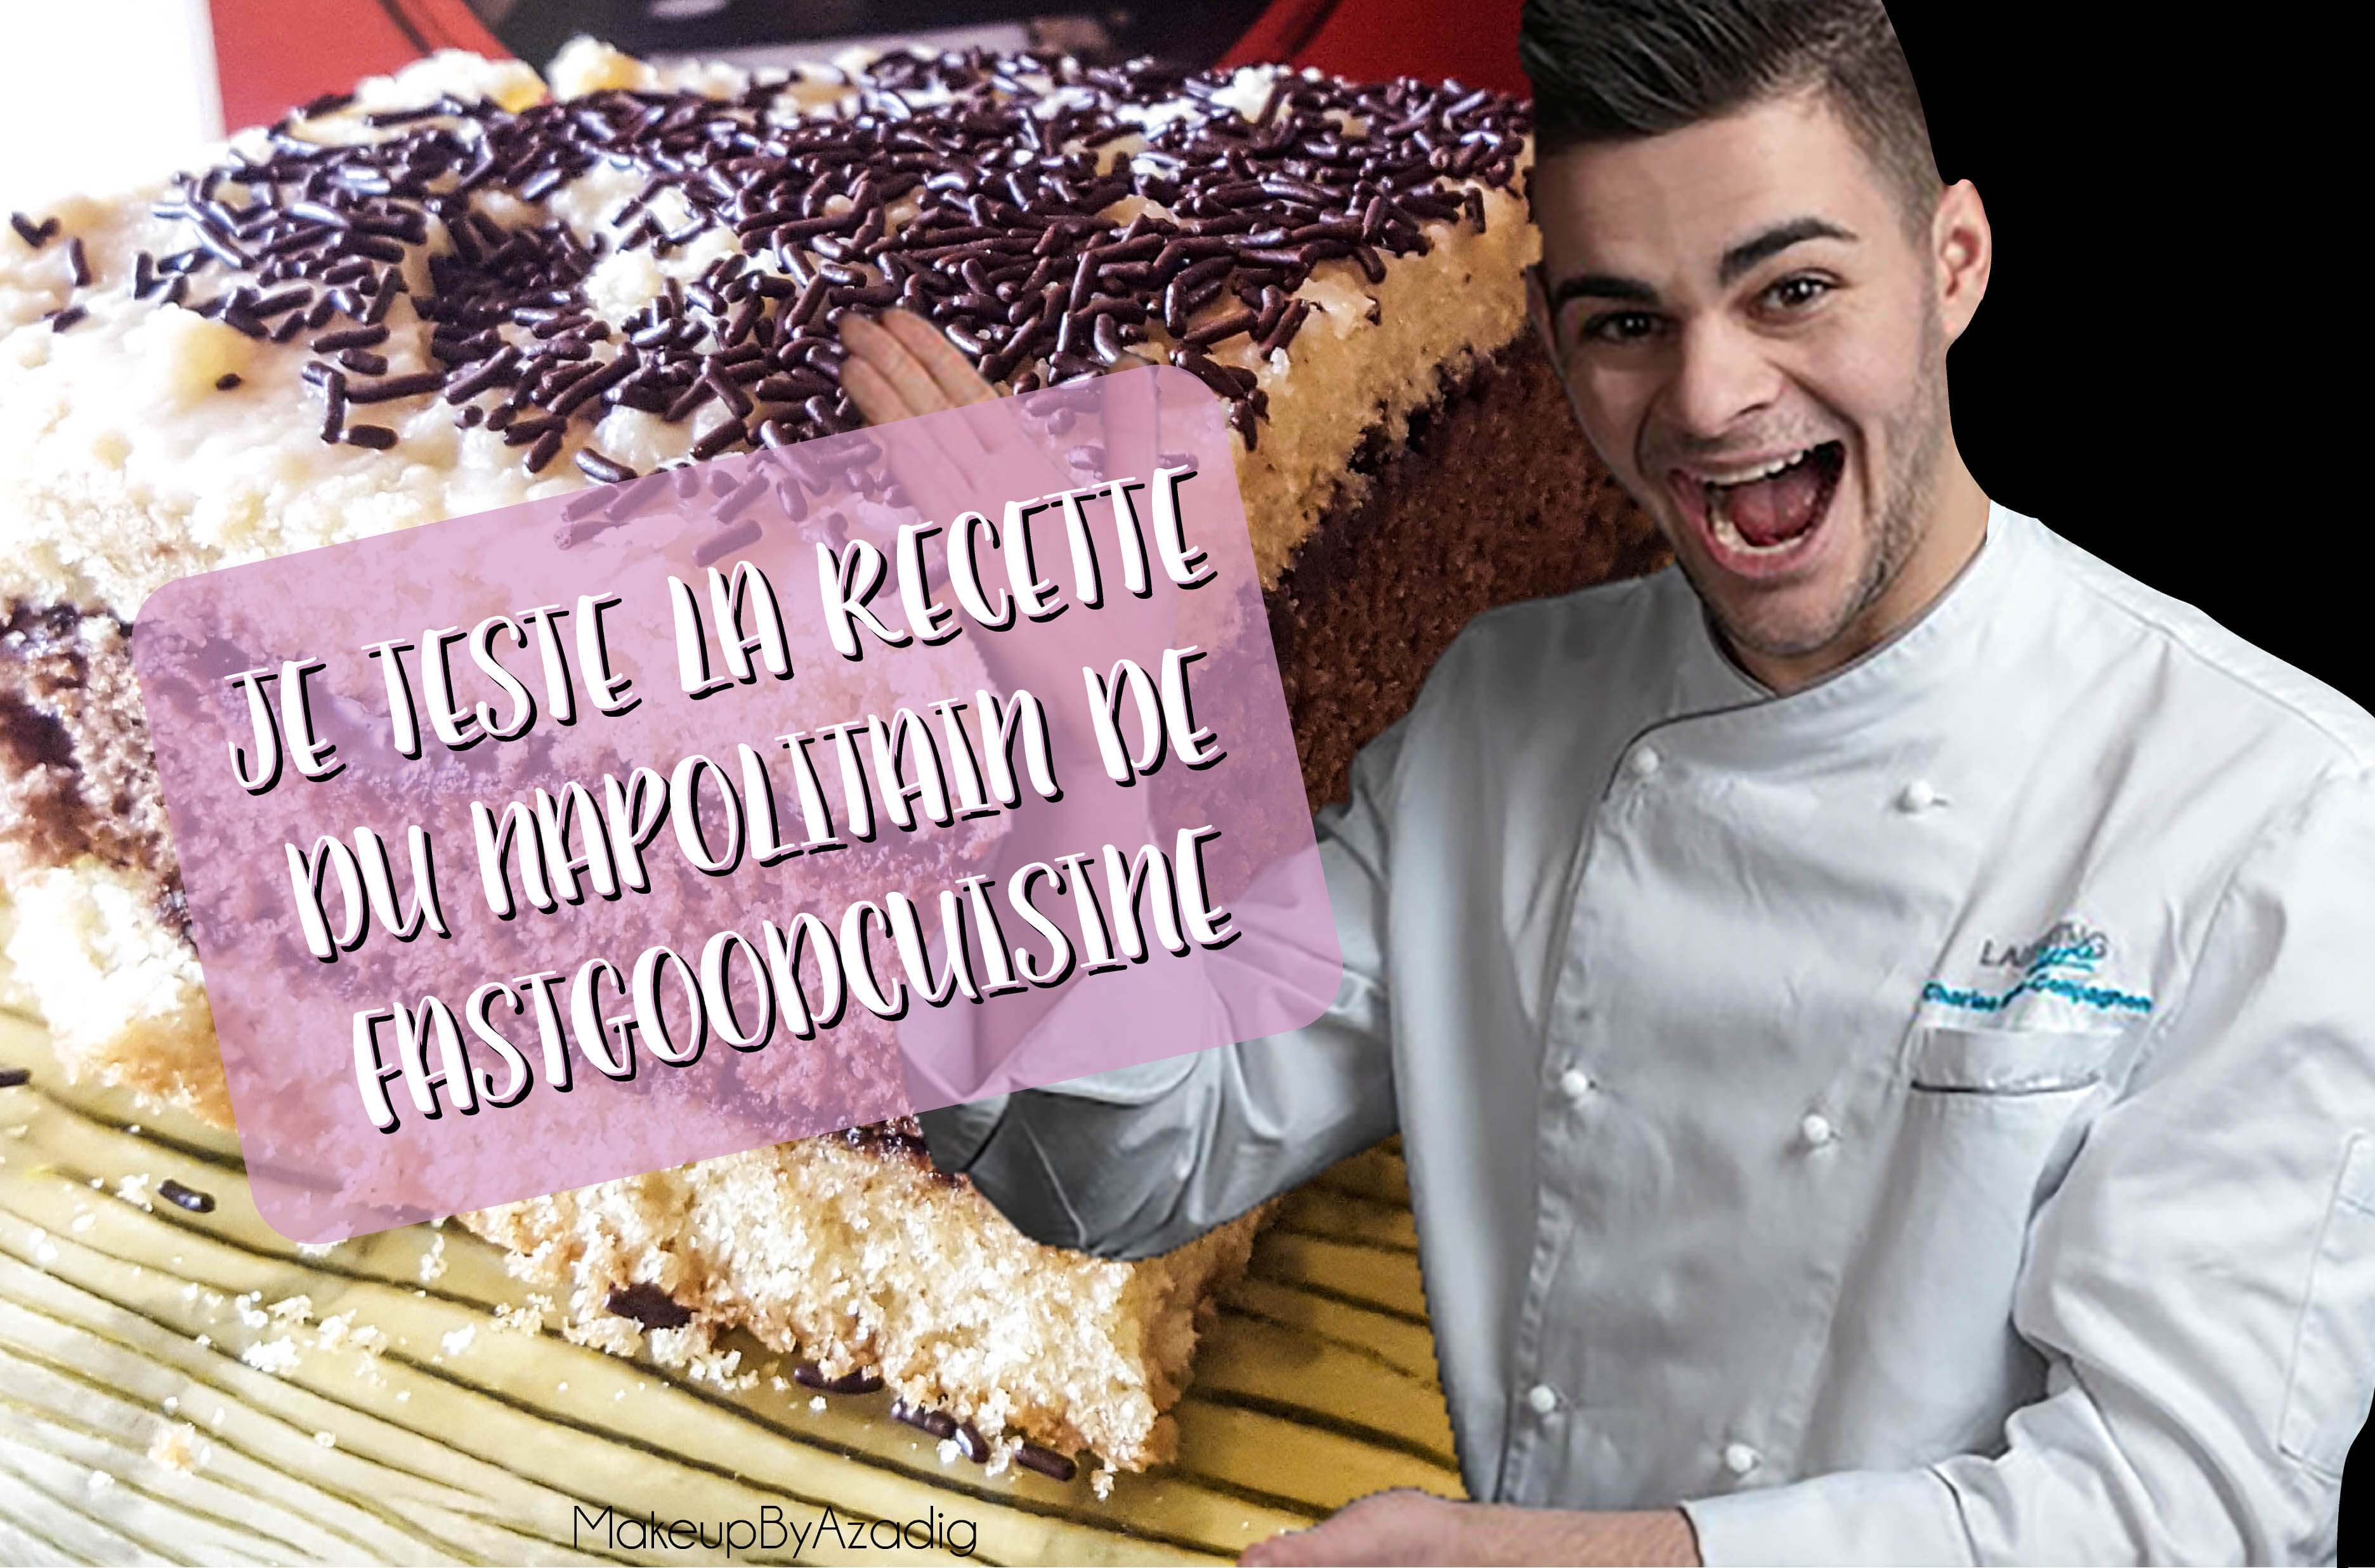 fast-good-cuisine-charles-fastgoodcuisine-makeupbyazadig-youtube-recette-napolitain